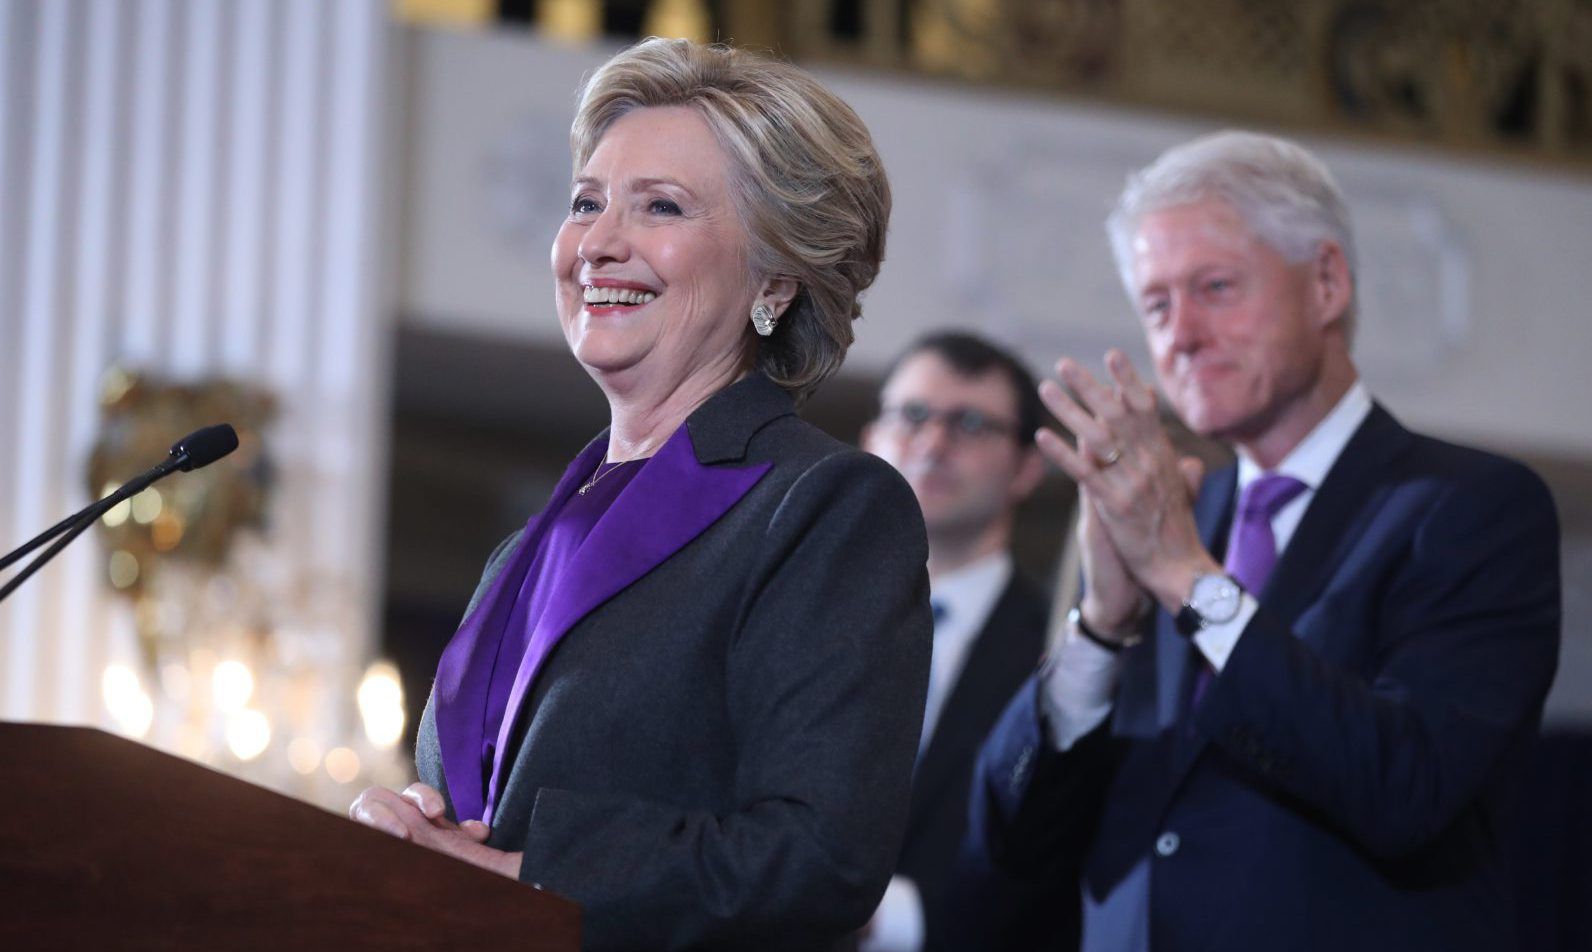 Democratic presidential candidate Hillary Clinton speaks in New York, Wednesday, Nov. 9, 2016.